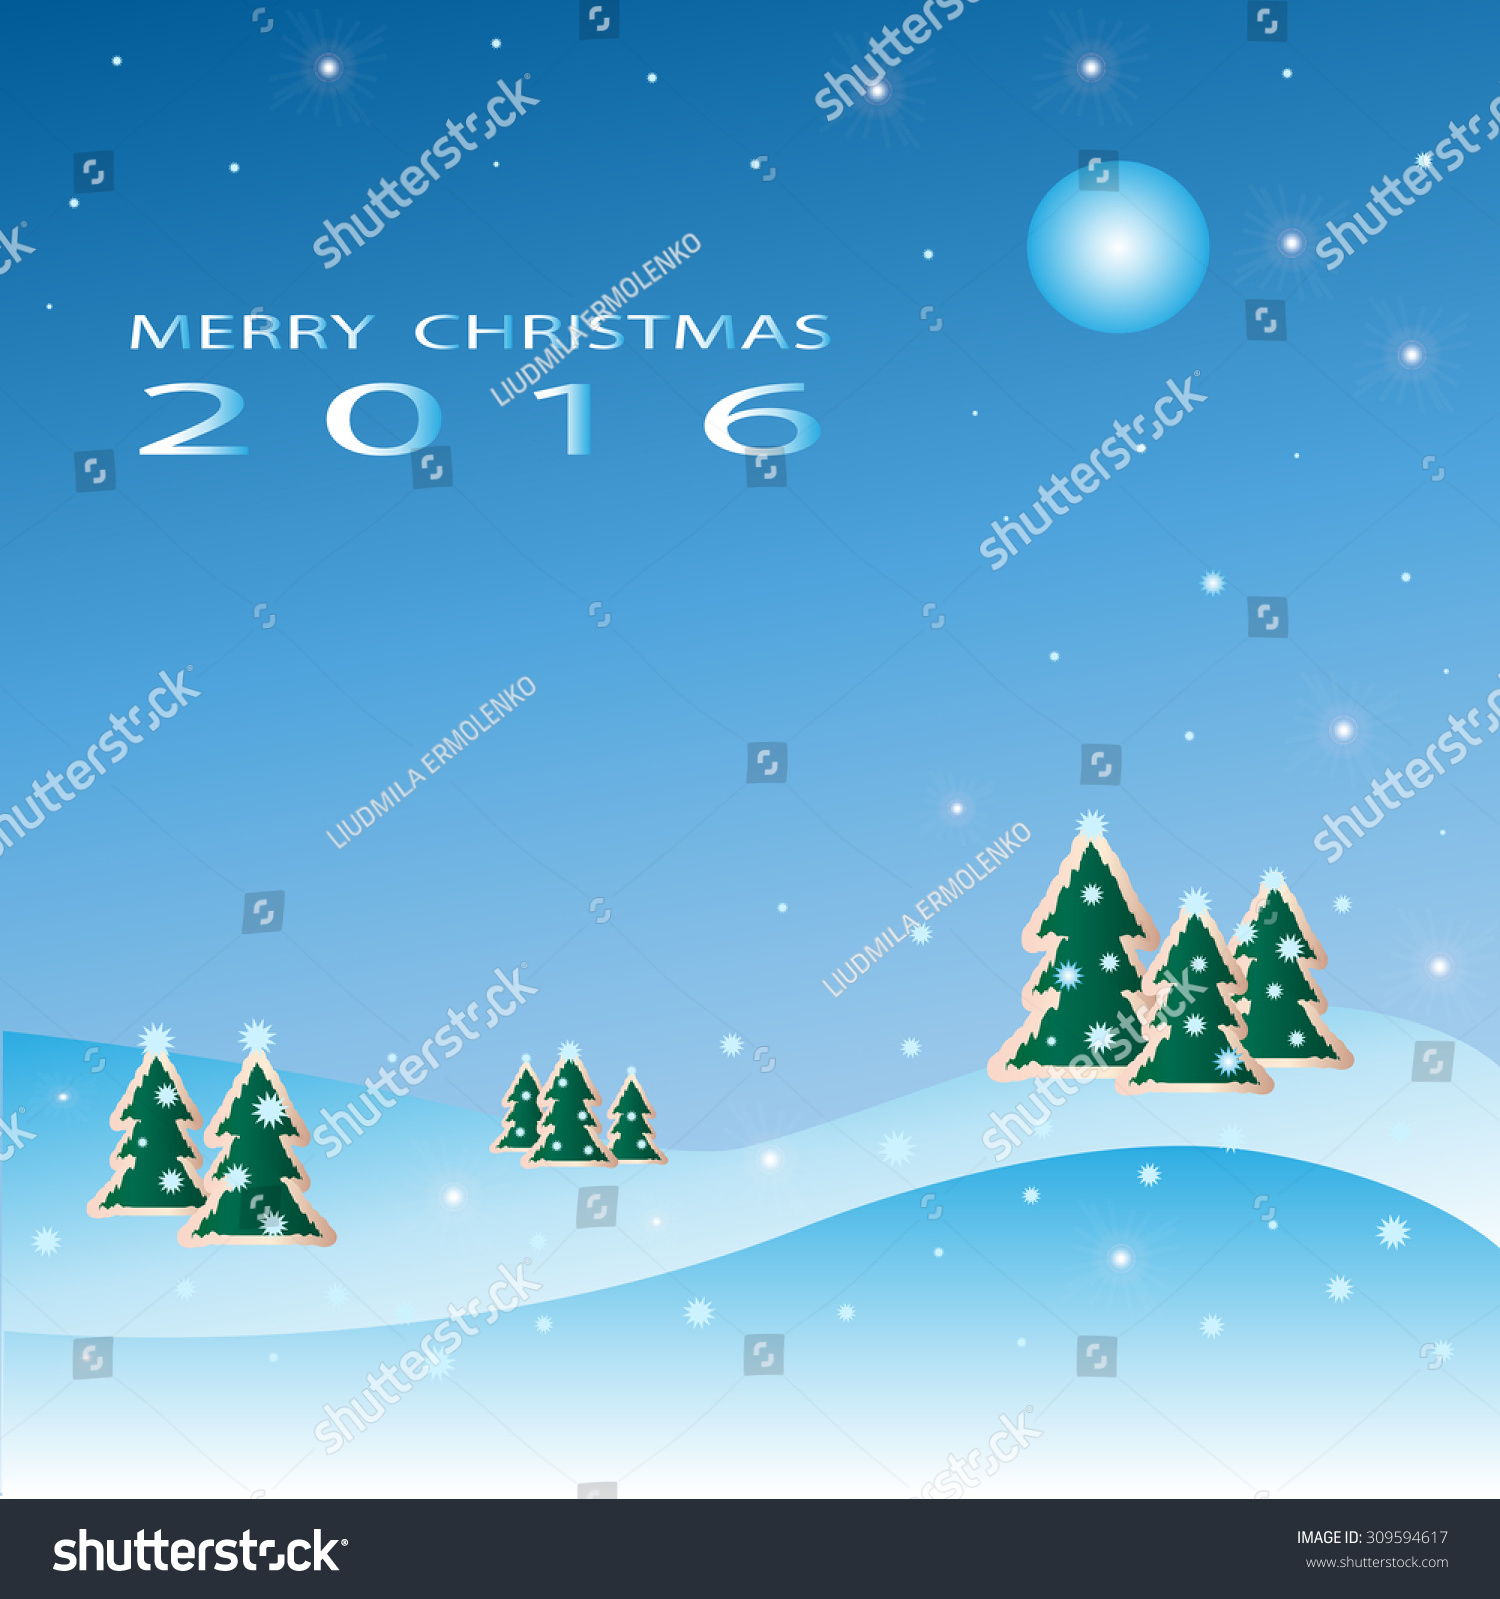 merry christmas background christmas trees snowflakes stock